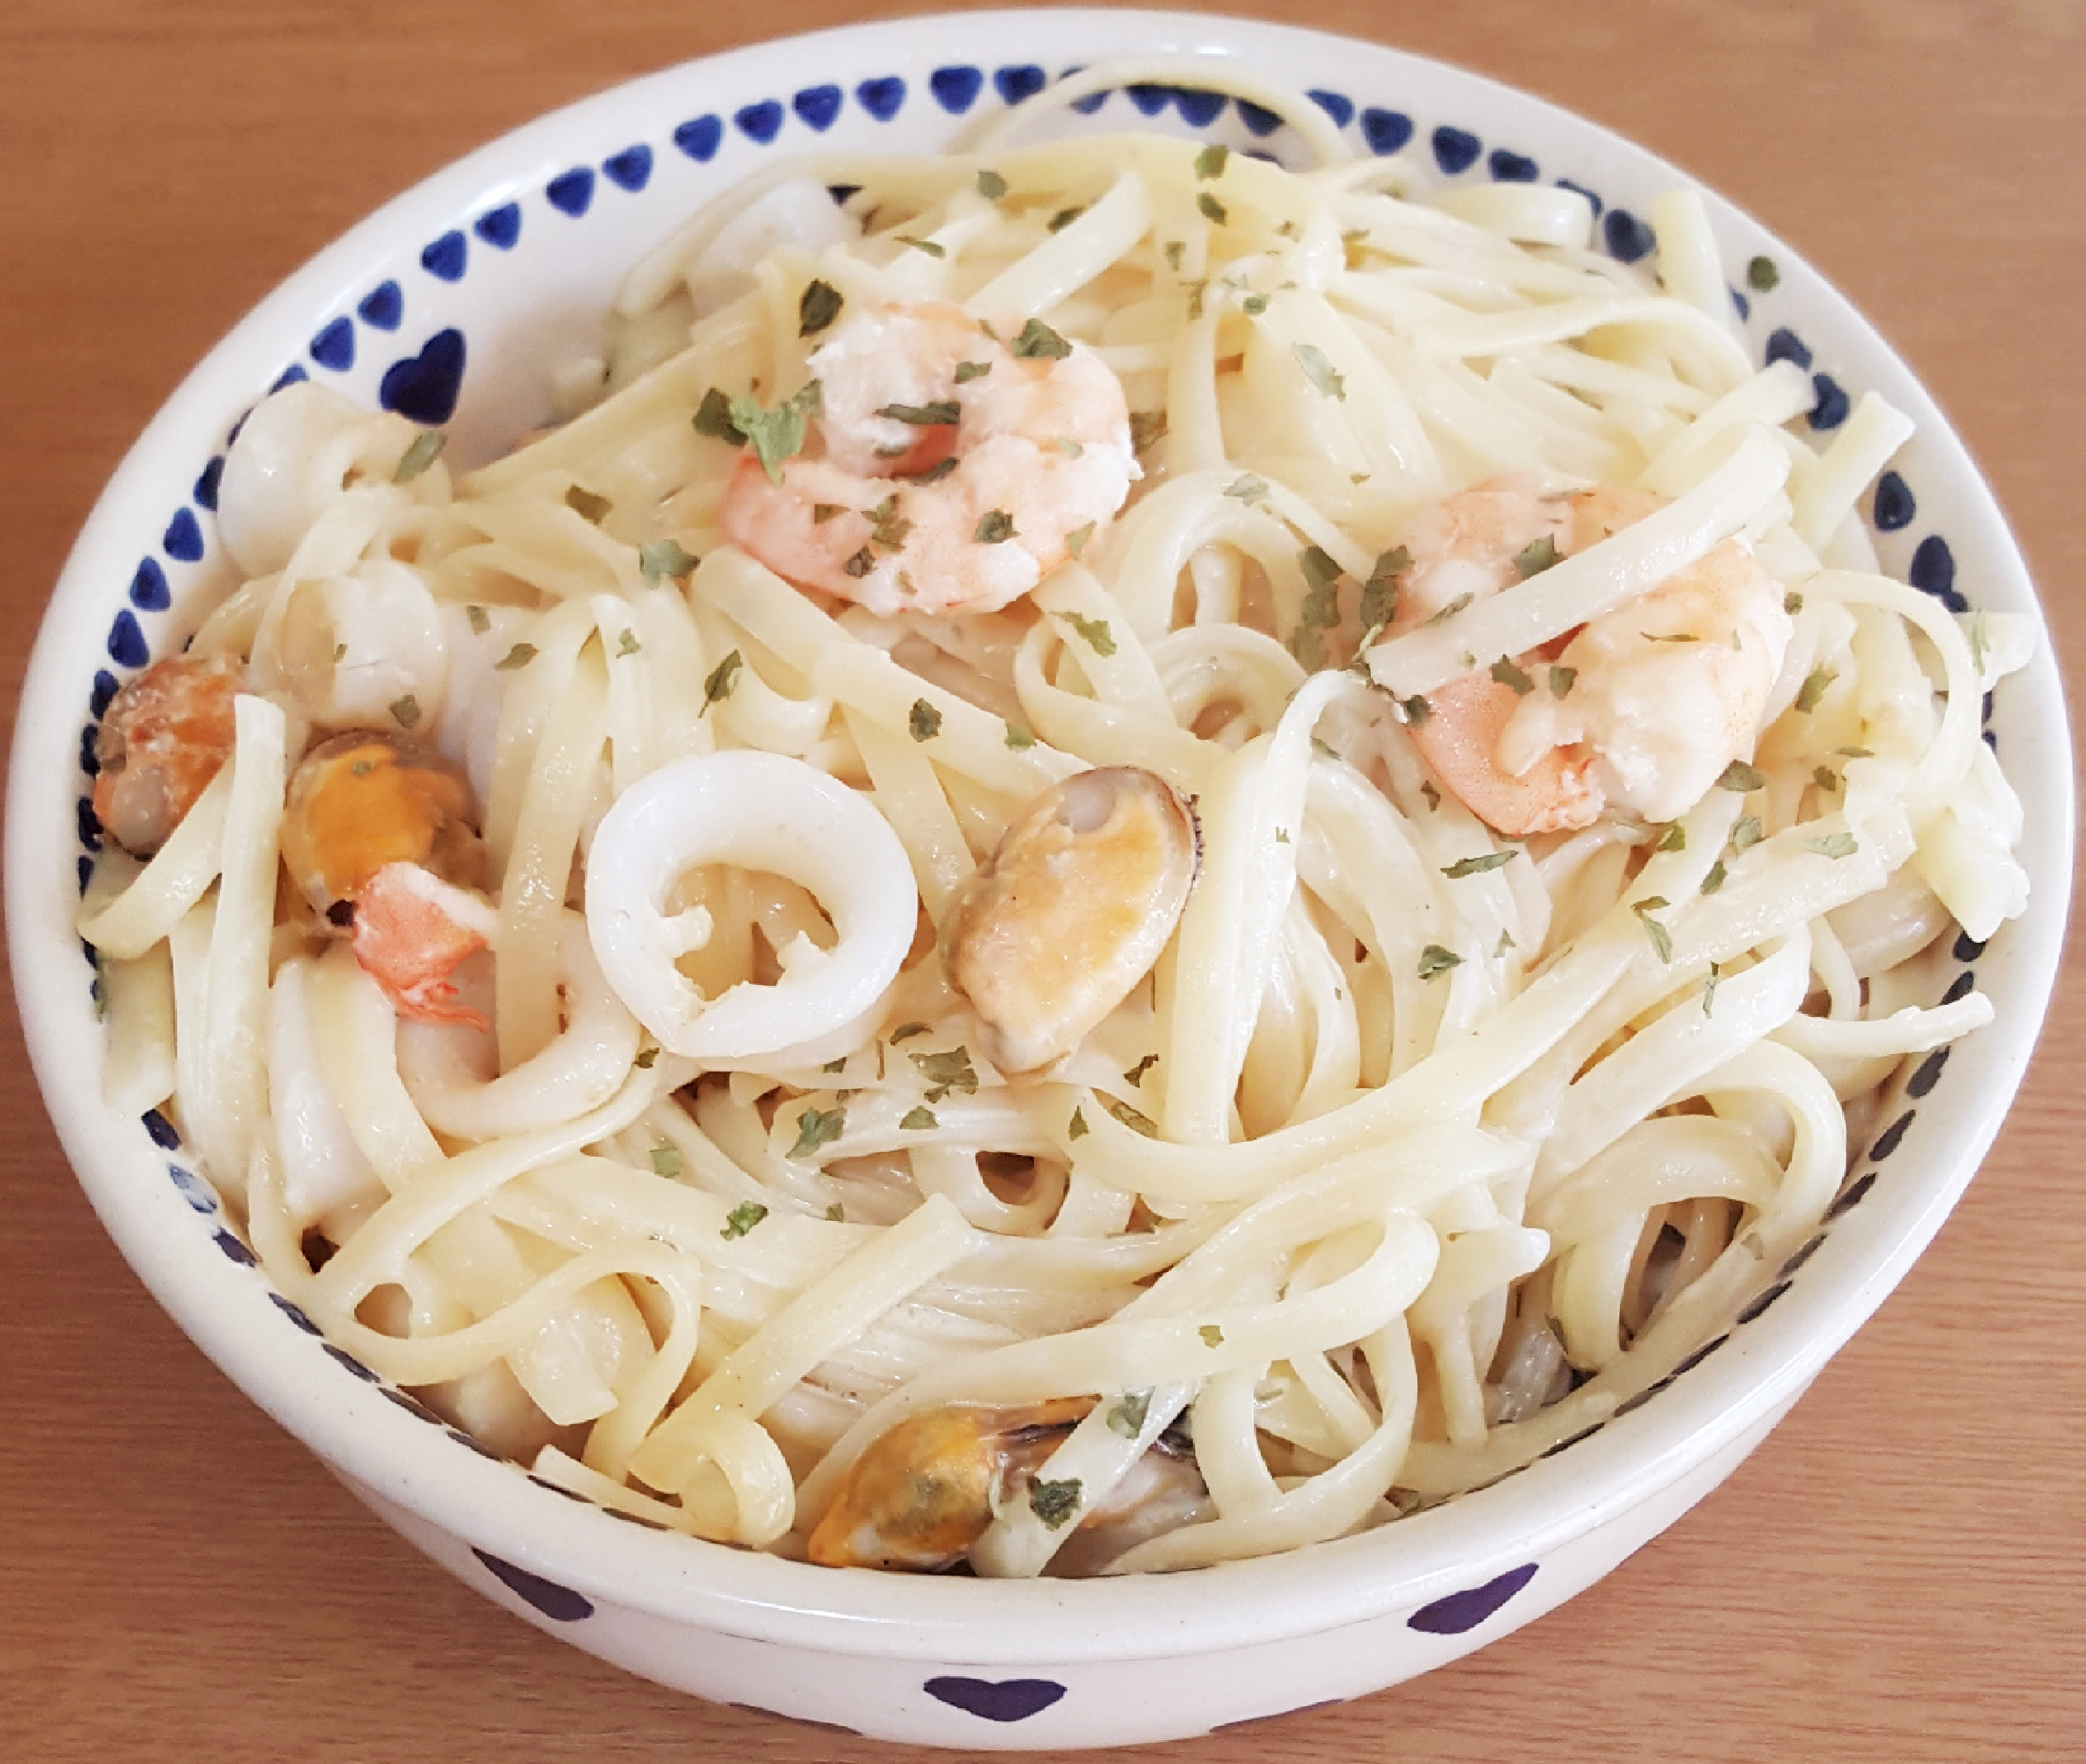 Delicious seafood linguine